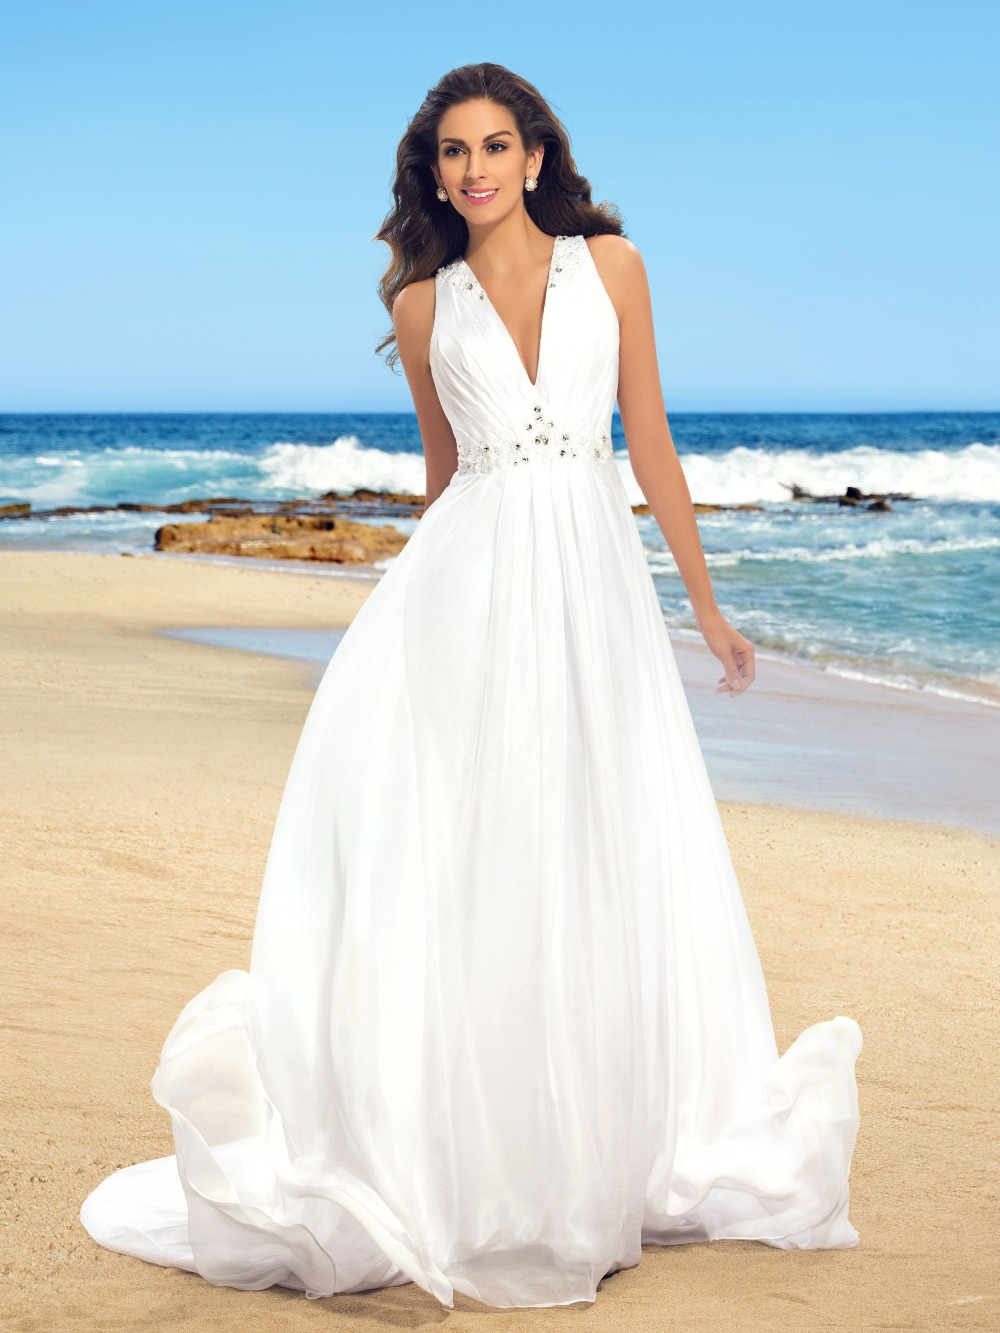 Summer style beach boho wedding dresses 2016 cheap flutter for Cheap boho wedding dresses